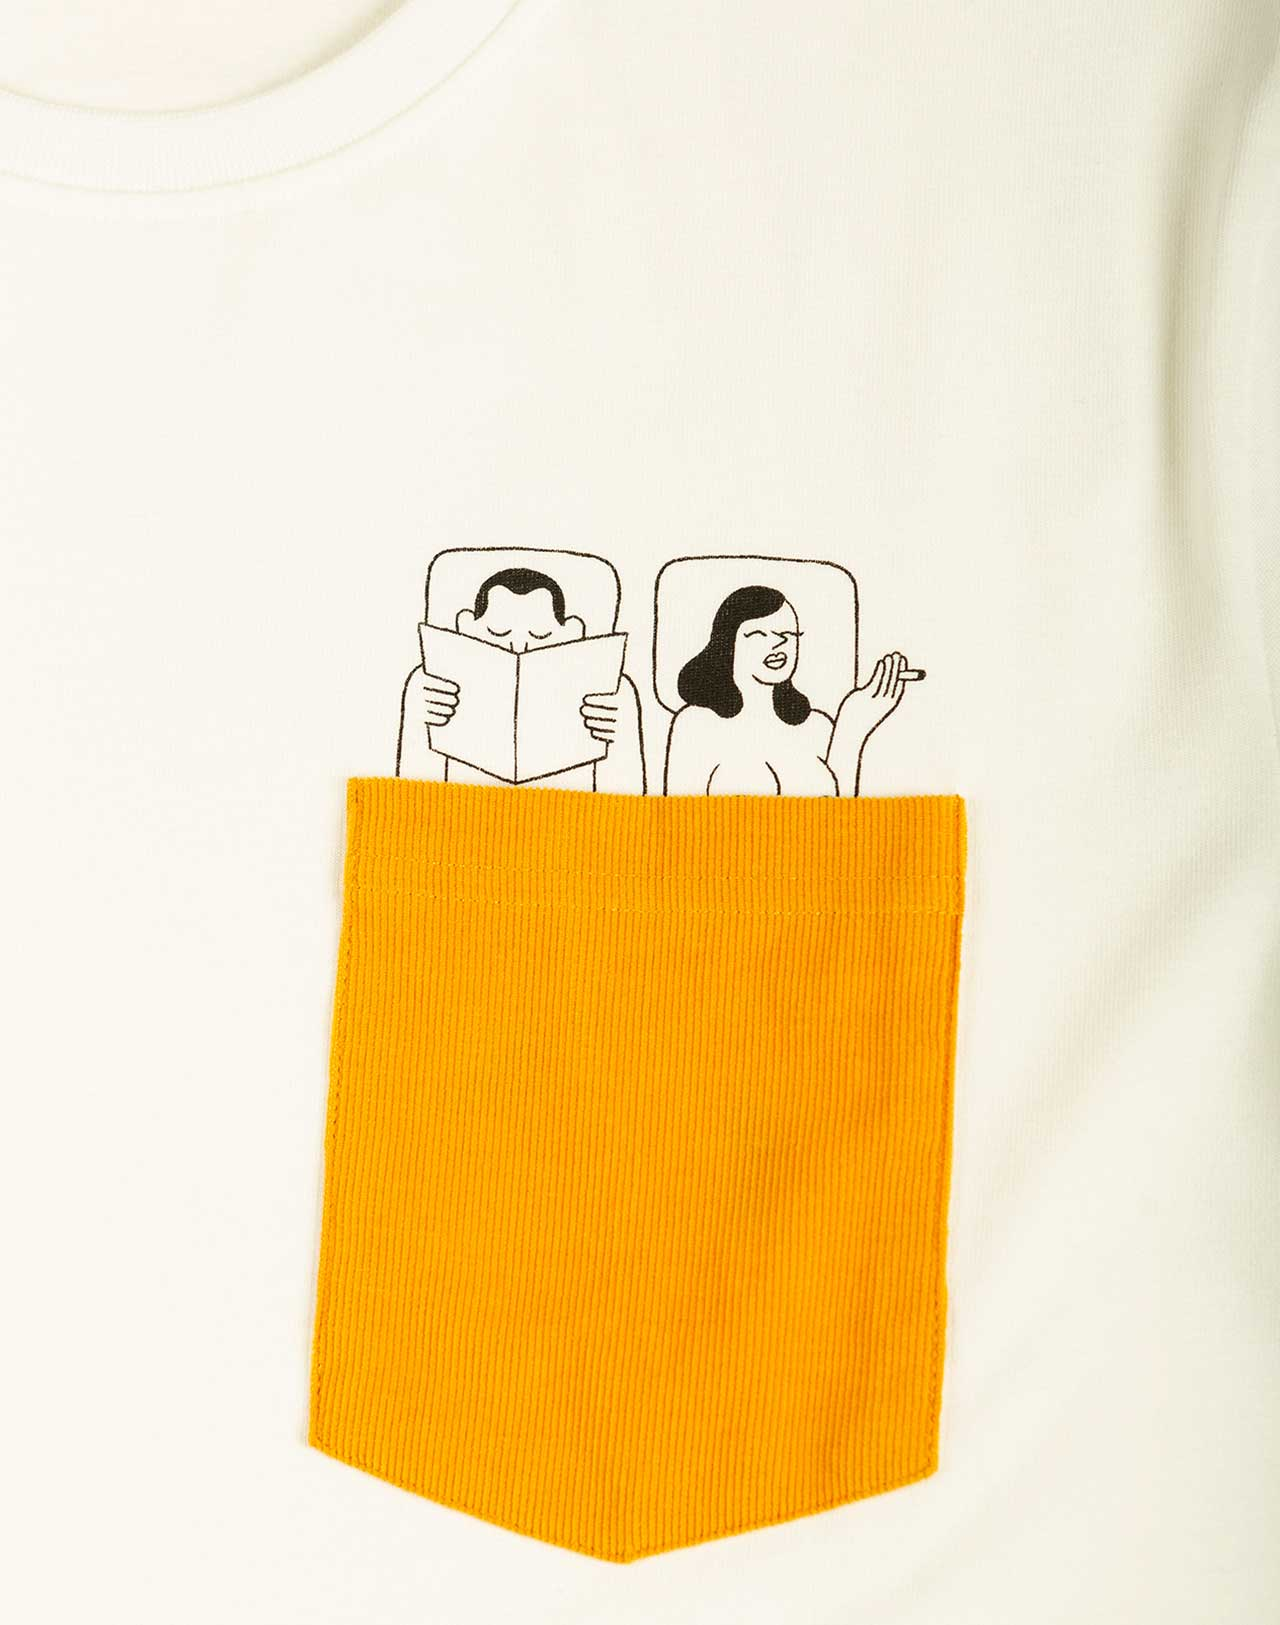 poche velour jaune illustration couples au lit Simon Landrein